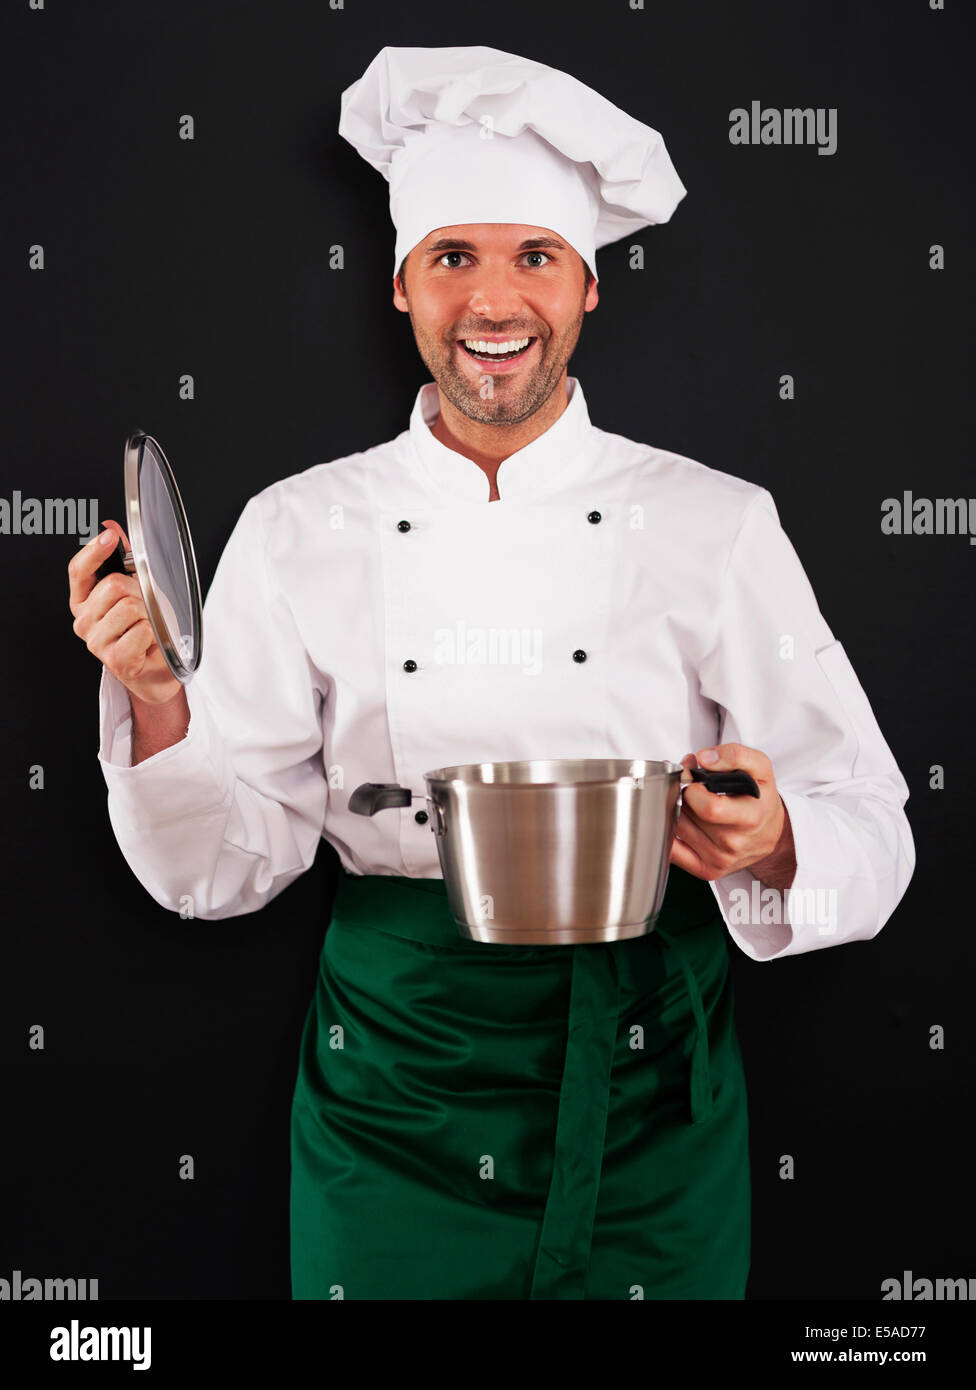 Chef cooking with pot, Debica, Poland - Stock Image